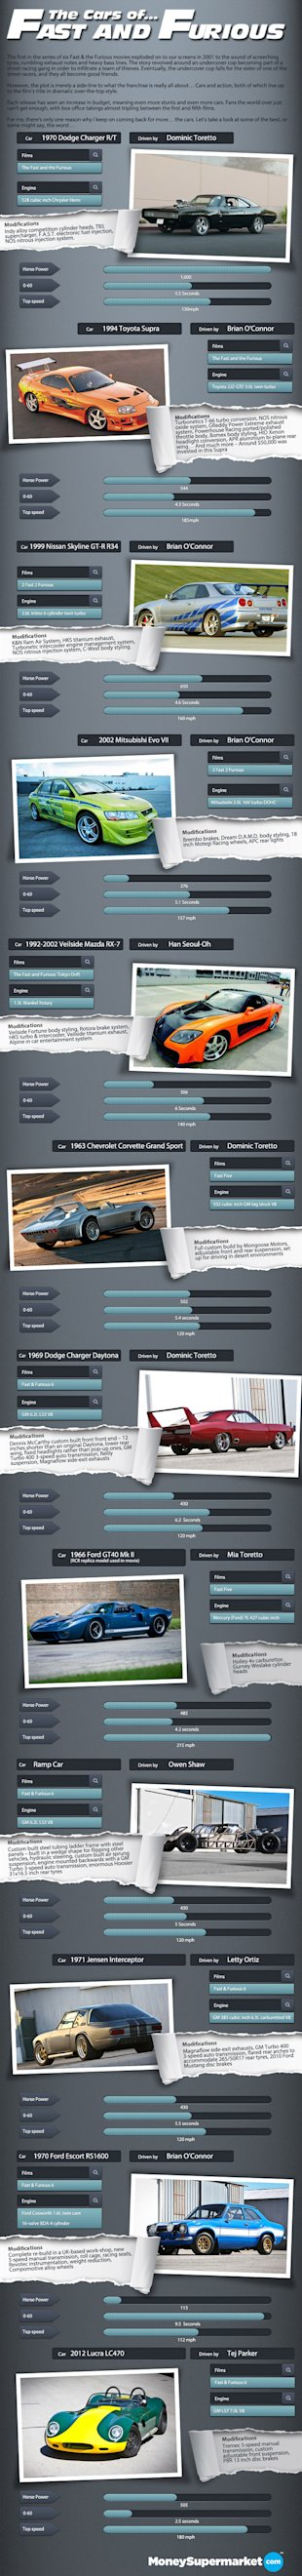 Cars of The Fast and the Furious [Infographic] image fast and furious new